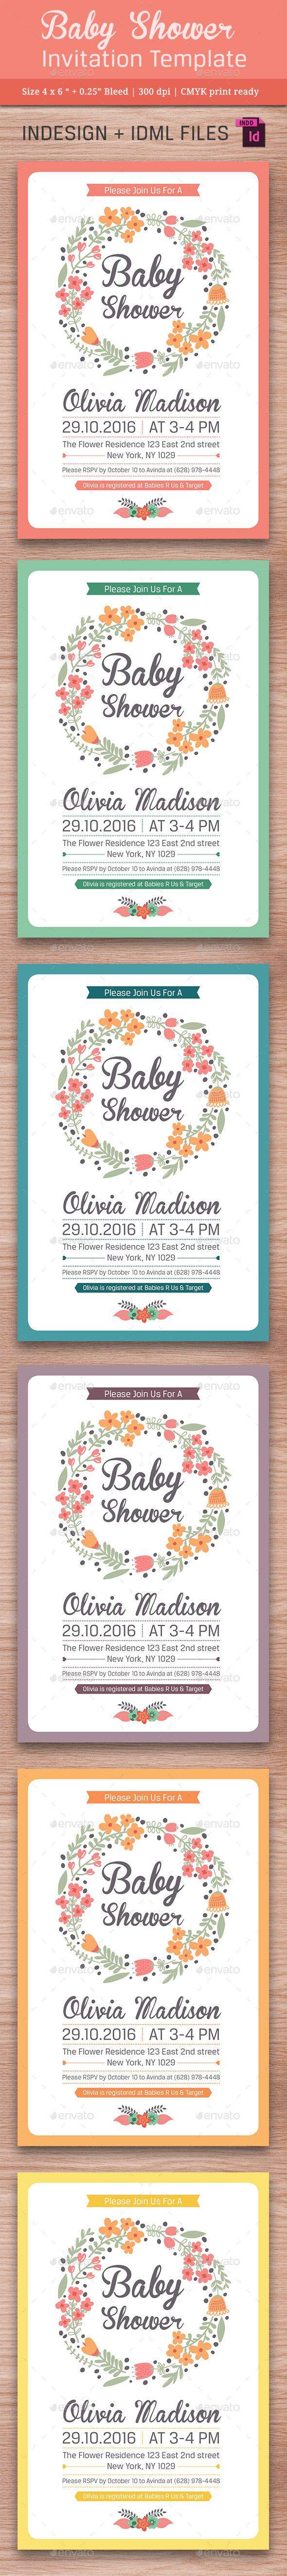 Baby Shower Template - Vol. 11 - Cards & Invites Print Templates